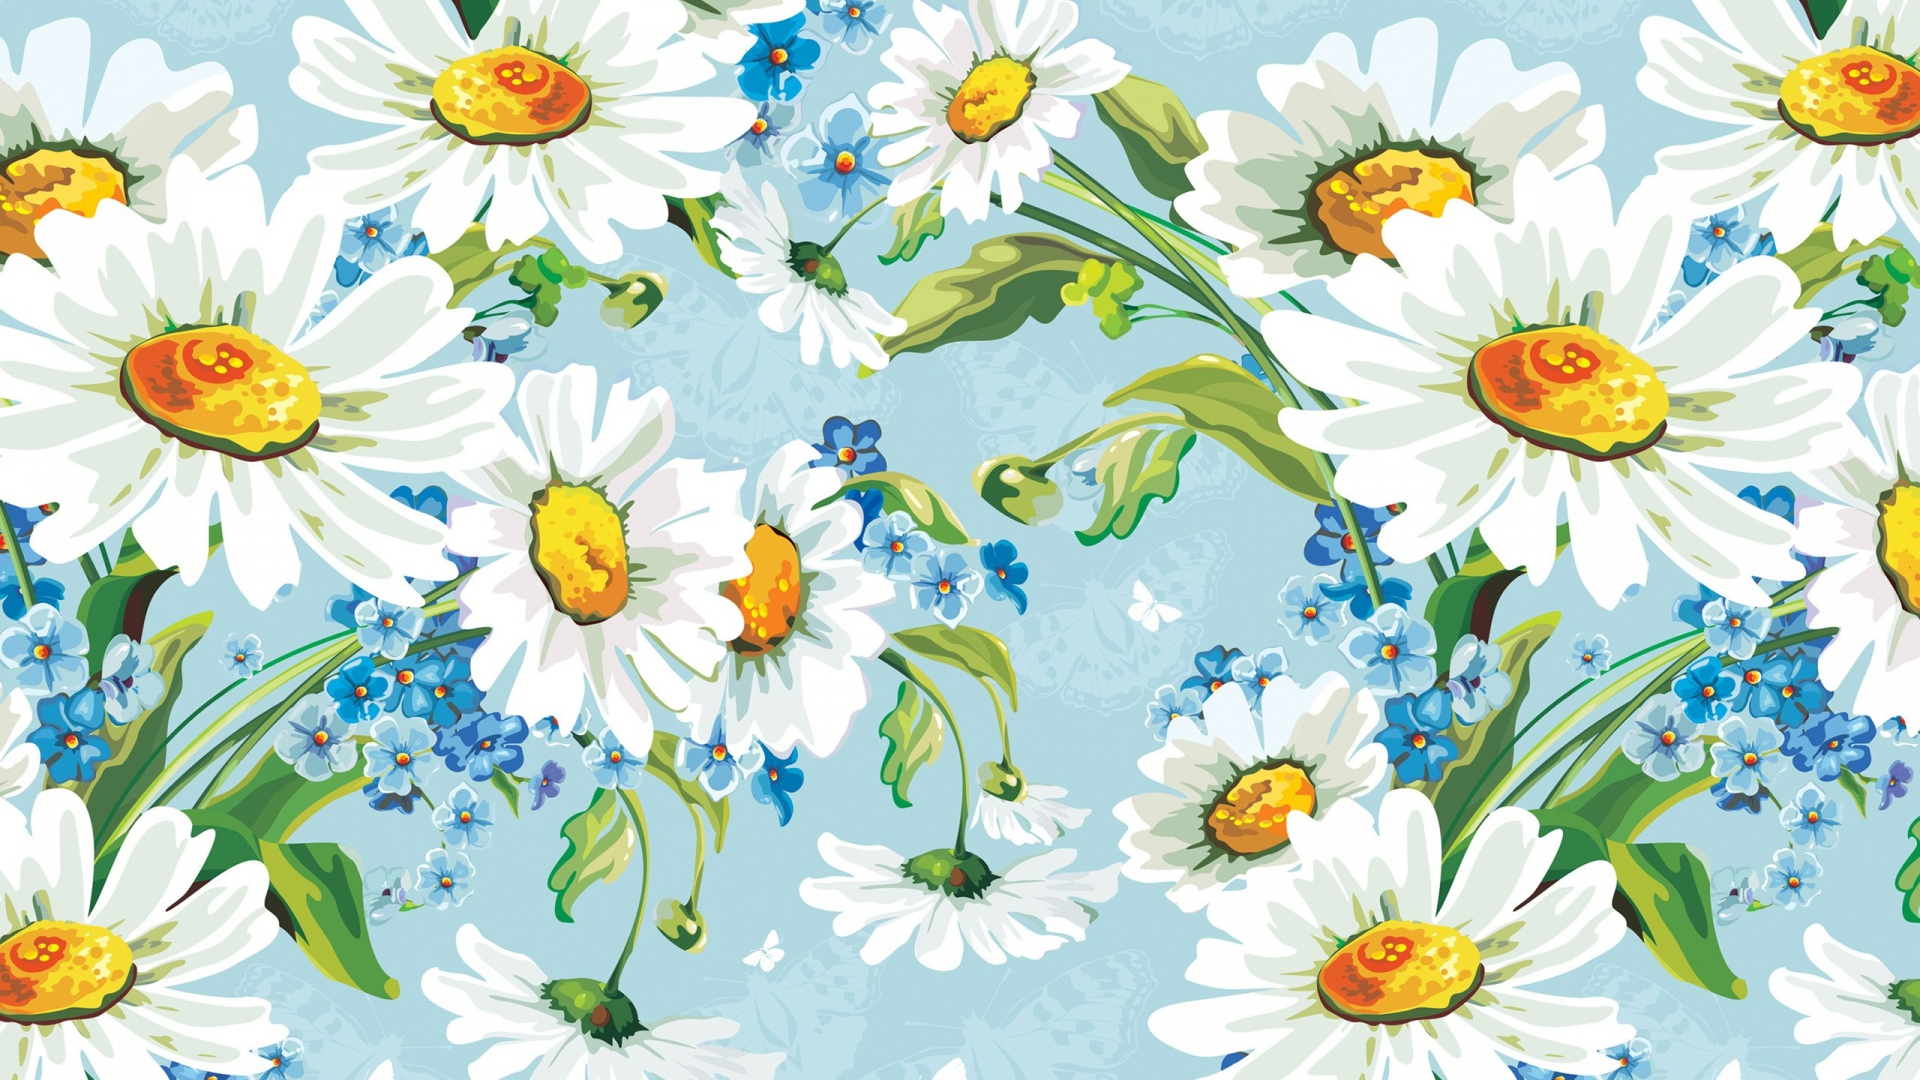 1920x1080 Download Wallpaper Background Drawing Flowers Daisies